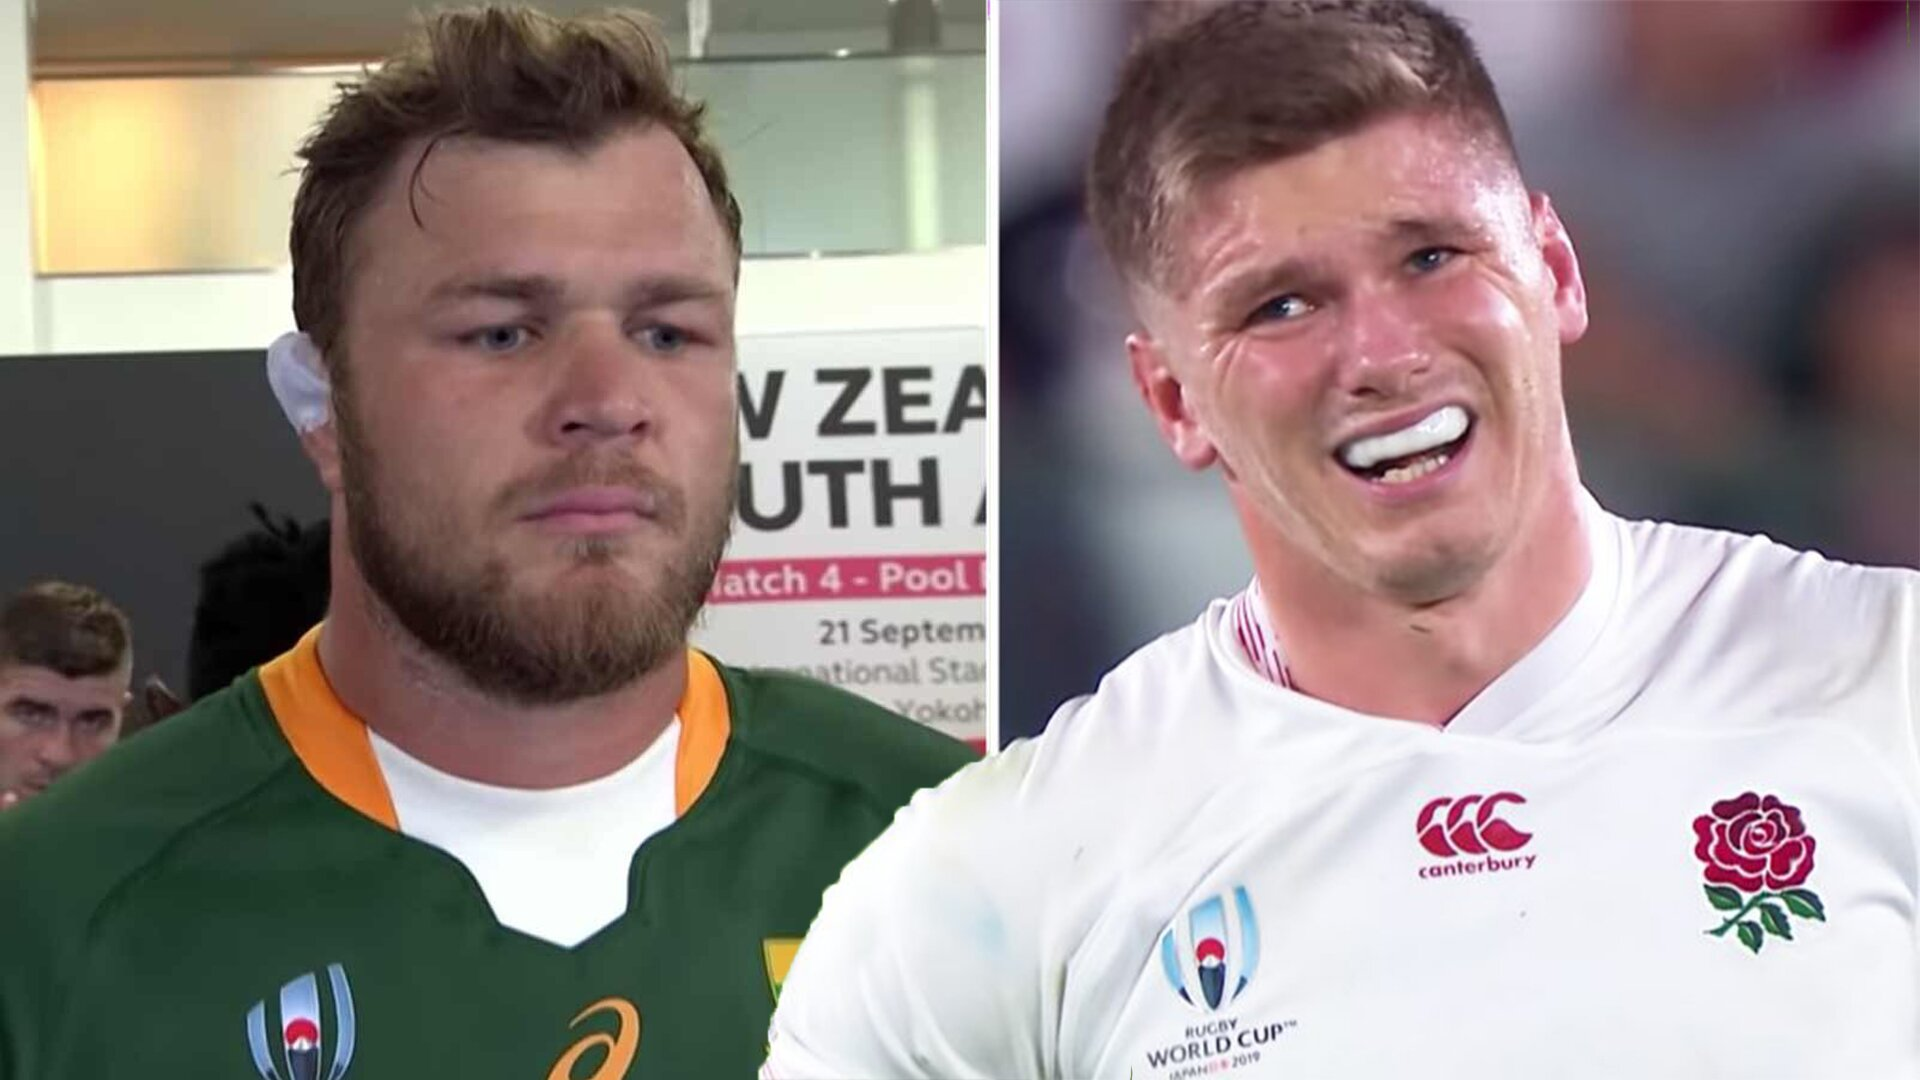 Who won the Rugby World Cup in 2019?